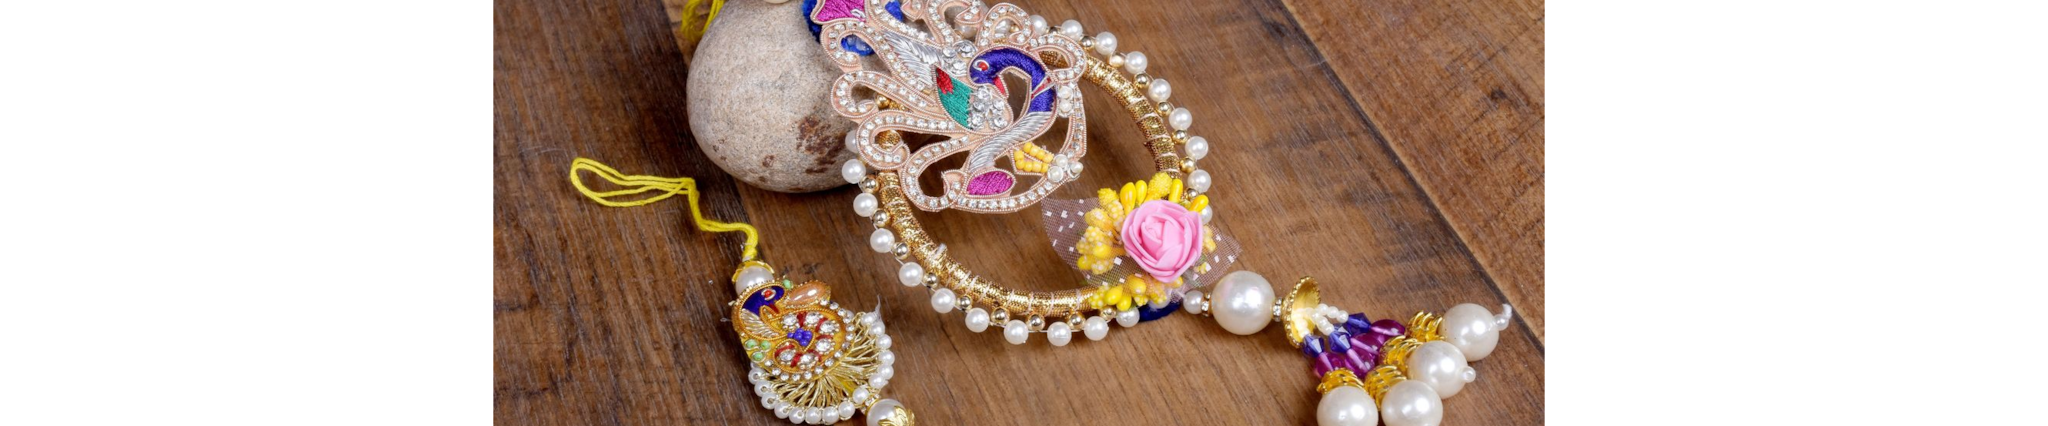 Exclusive Designs Hand picked exquisite rakhi collection. Rakhi Sets, Hampers, Thalis and Personalised Gifts. Gifts for Brother, Sister and Bhaiya Bhabhi. Sweets, Chocolates and Dry Fruit Hampers. Register Online. Track An Order. Sign Up For Newsletters. Gifts for Brother Rakhi Thalis Rakhi Hampers Gifts for Bhaiya-Bhabhi Exclusive Rakhis Exclusive Rakhis for 149. Gifts for Kids Gifts for Sister Paragrakhi Online rakhi